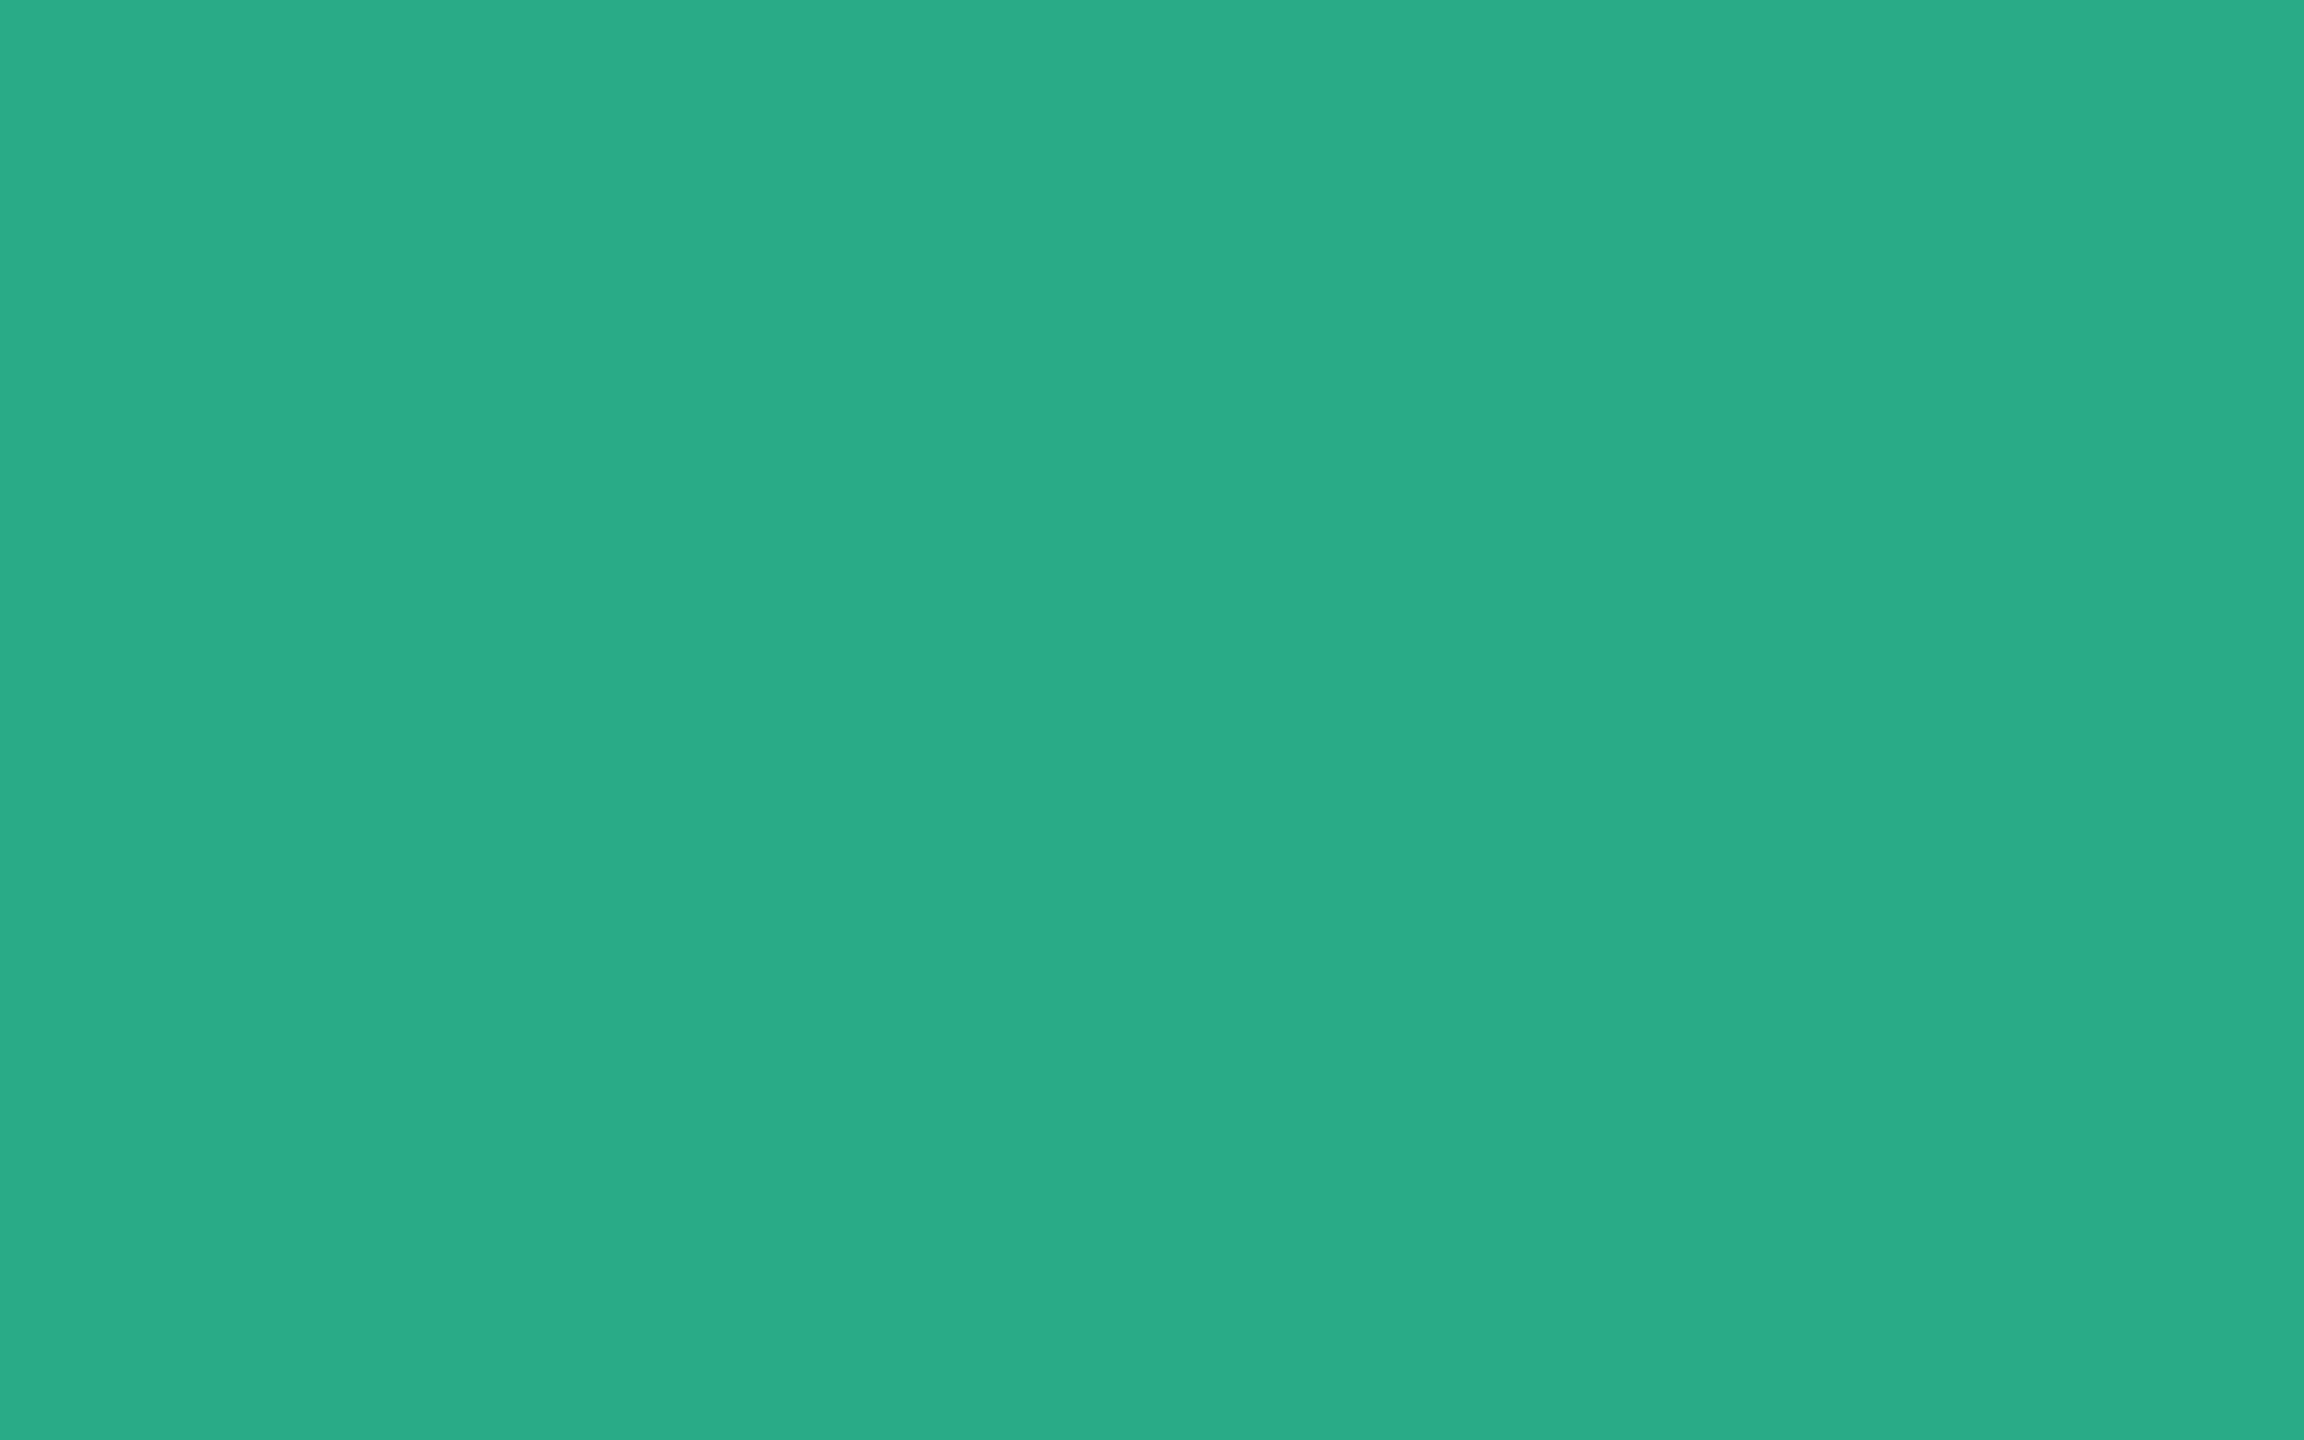 2304x1440 Jungle Green Solid Color Background